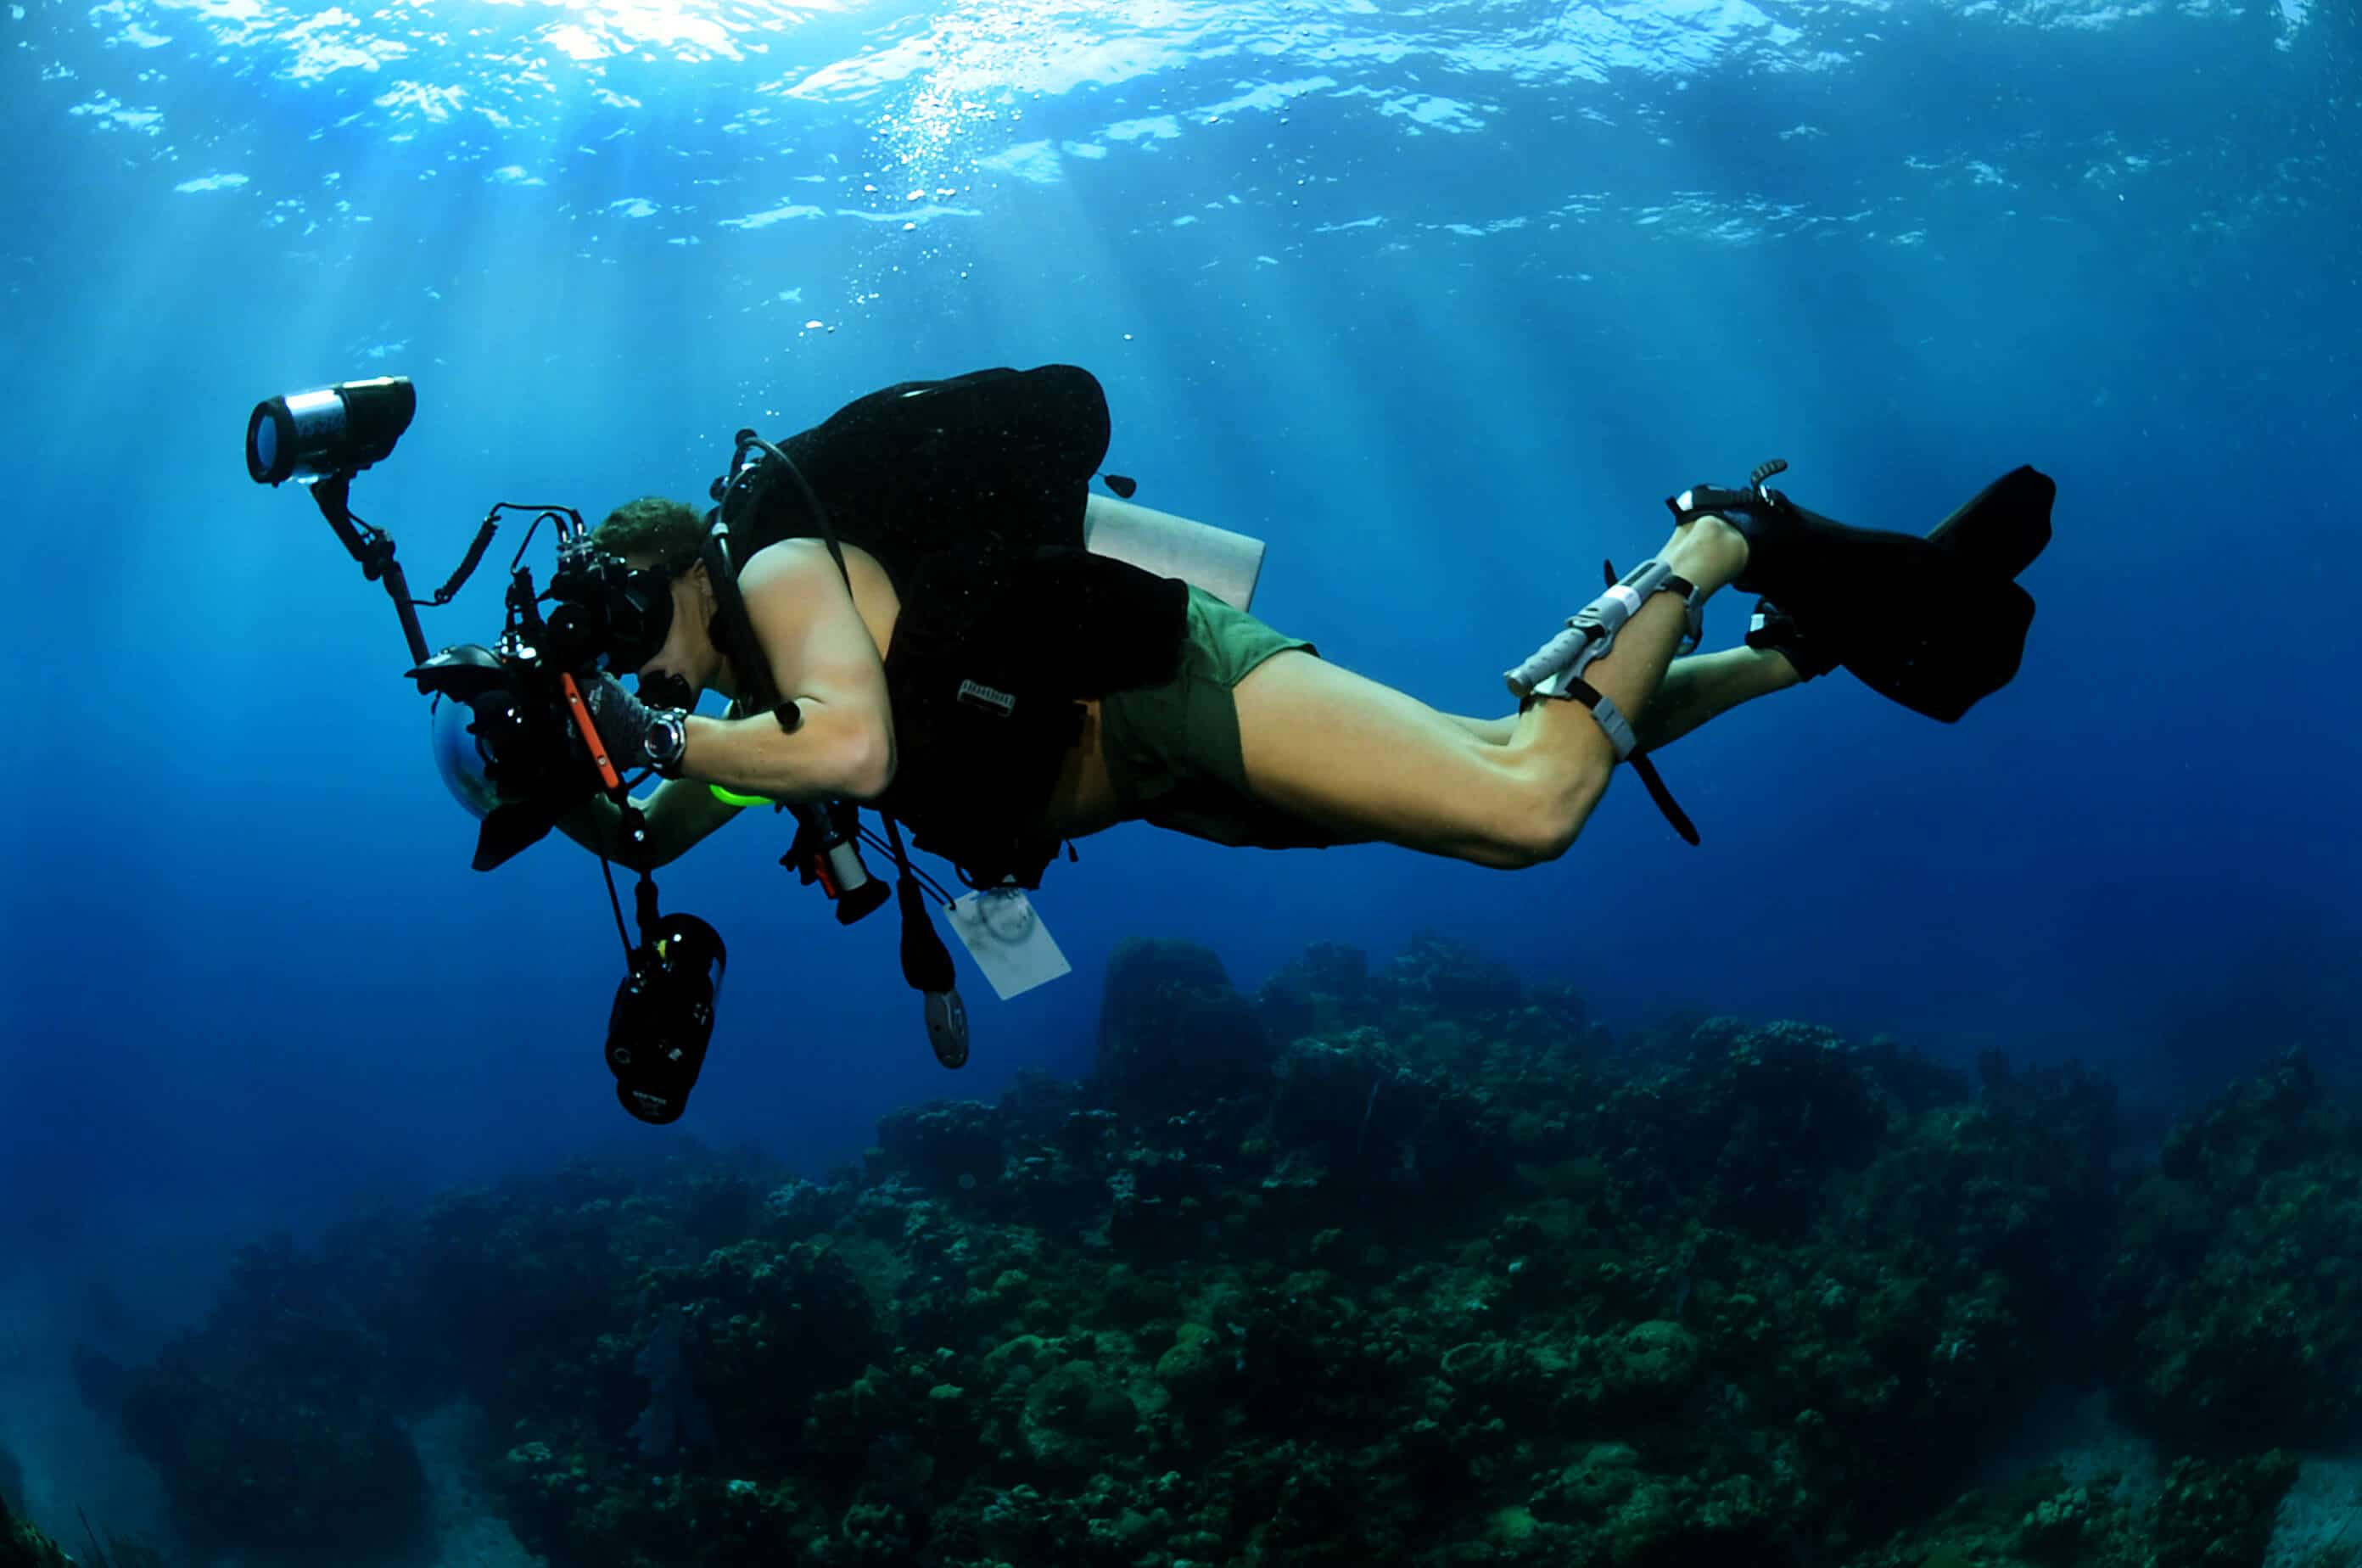 diver with a large camera in good working position and showing good buoyancy